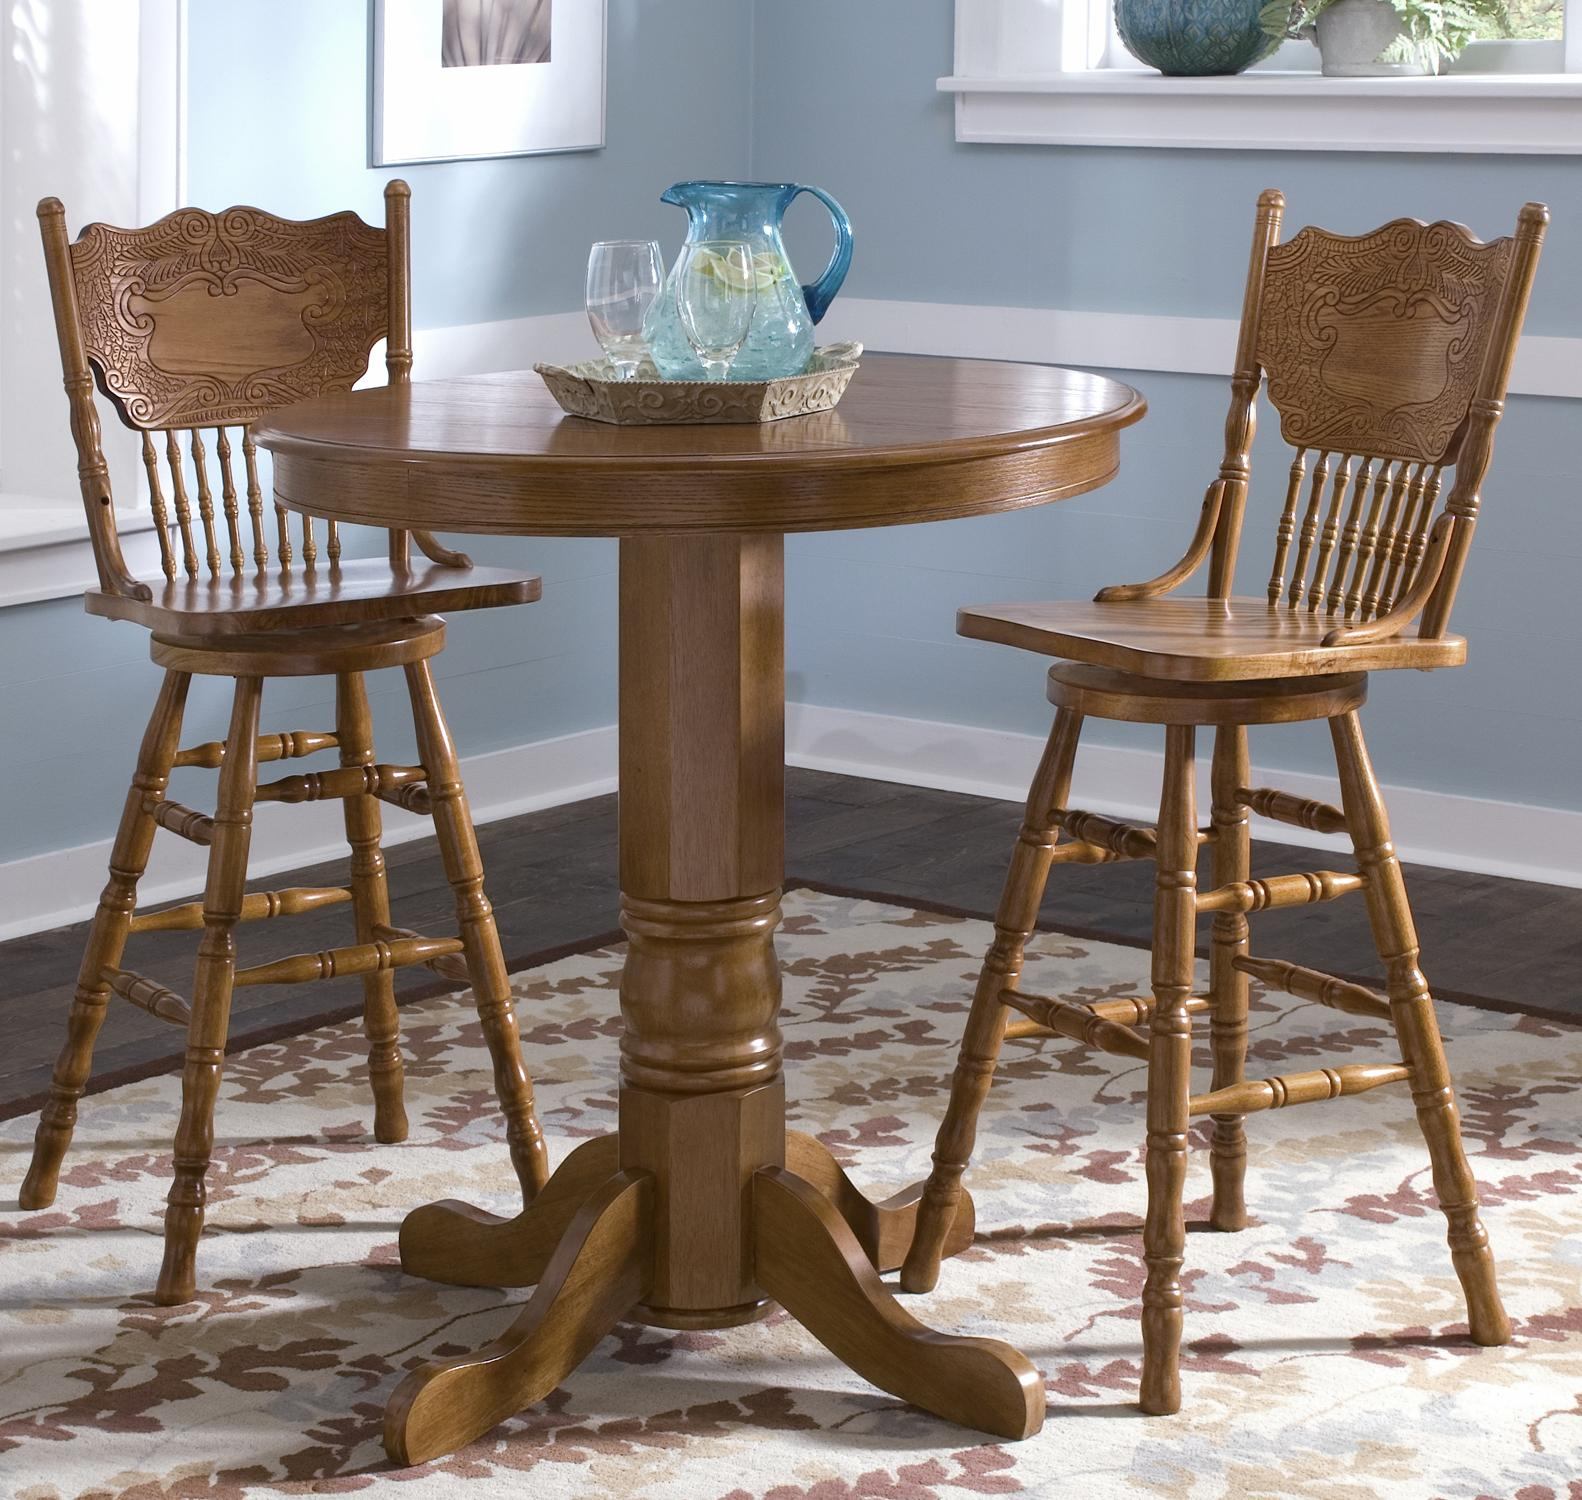 3 Piece Round Pub Table Dining Set